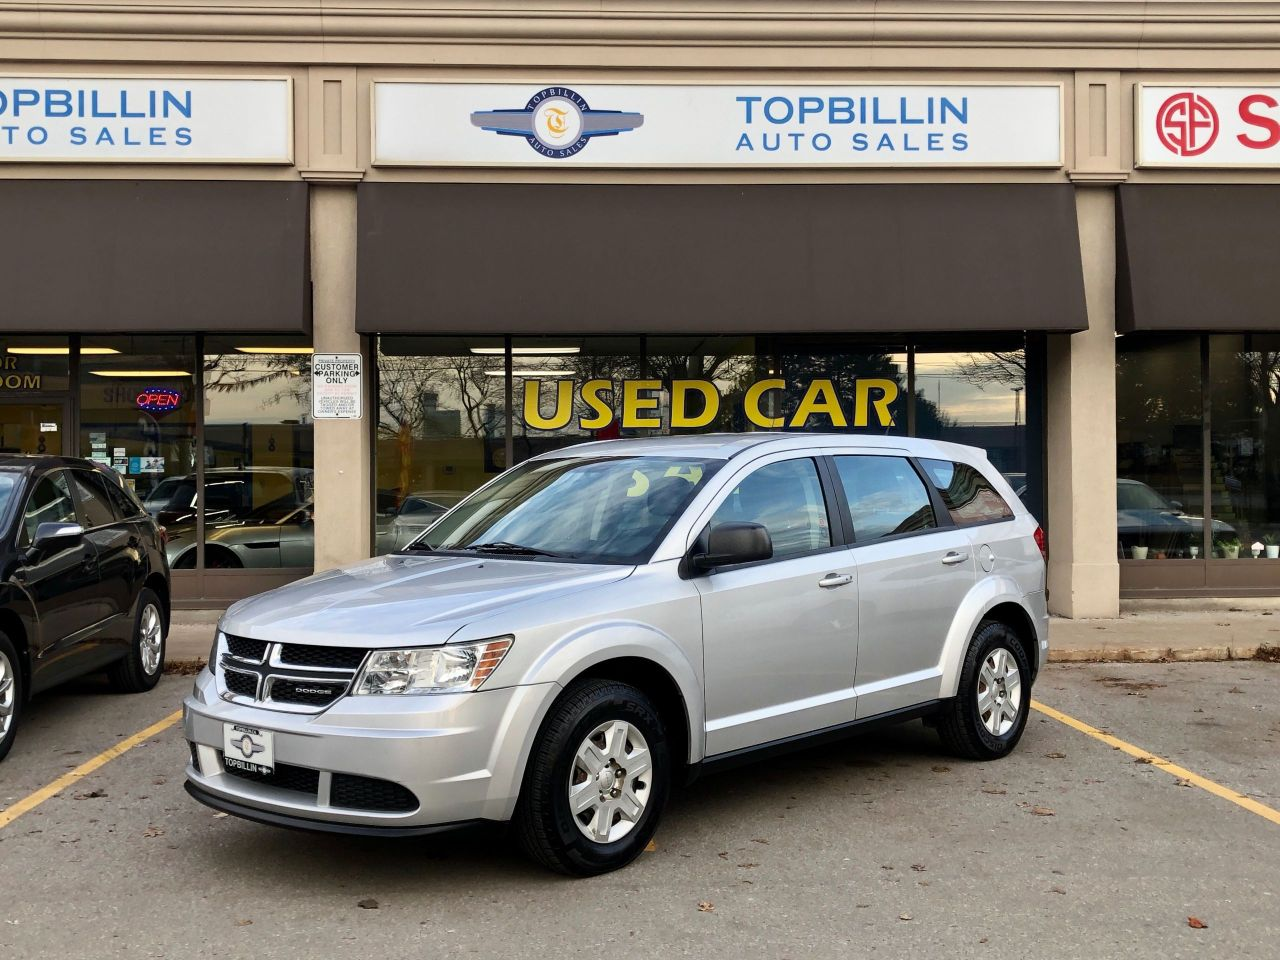 2011 Dodge Journey Canada Value Pkg, 132K, 2 years warranty